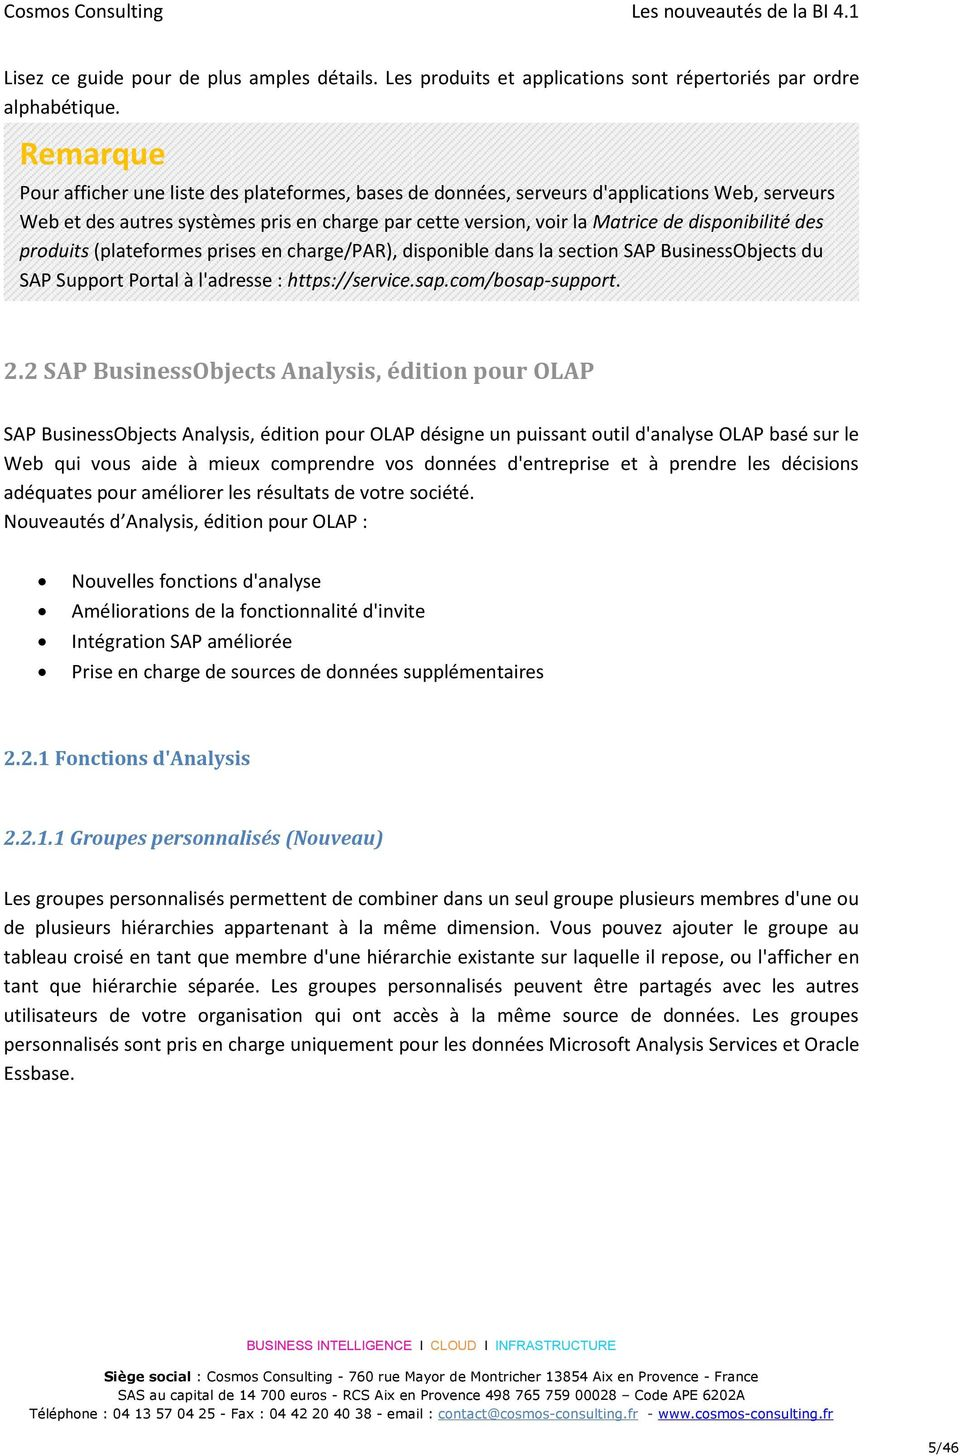 des produits (plateformes prises en charge/par), disponible dans la section SAP BusinessObjects du SAP Support Portal à l'adresse : https://service.sap.com/bosap-support. 2.